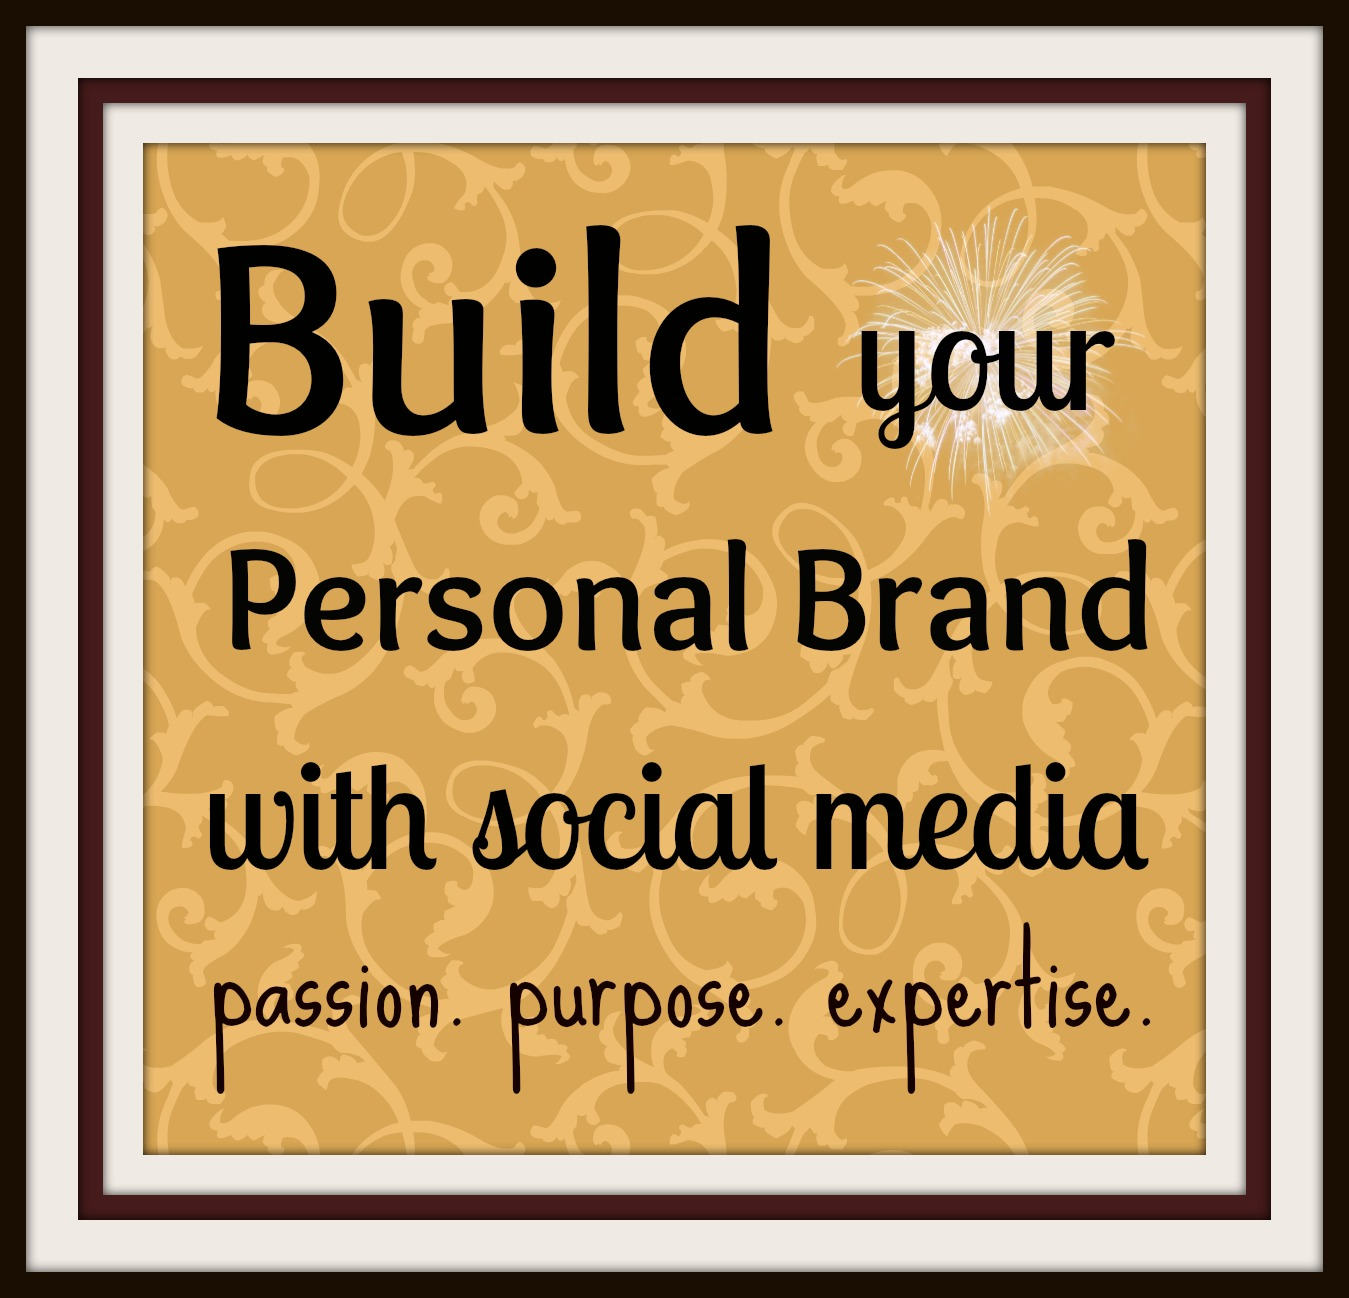 personal brand #BuildYrBrand 5: Build Your Brand with a Blog (or podcast or vlog)